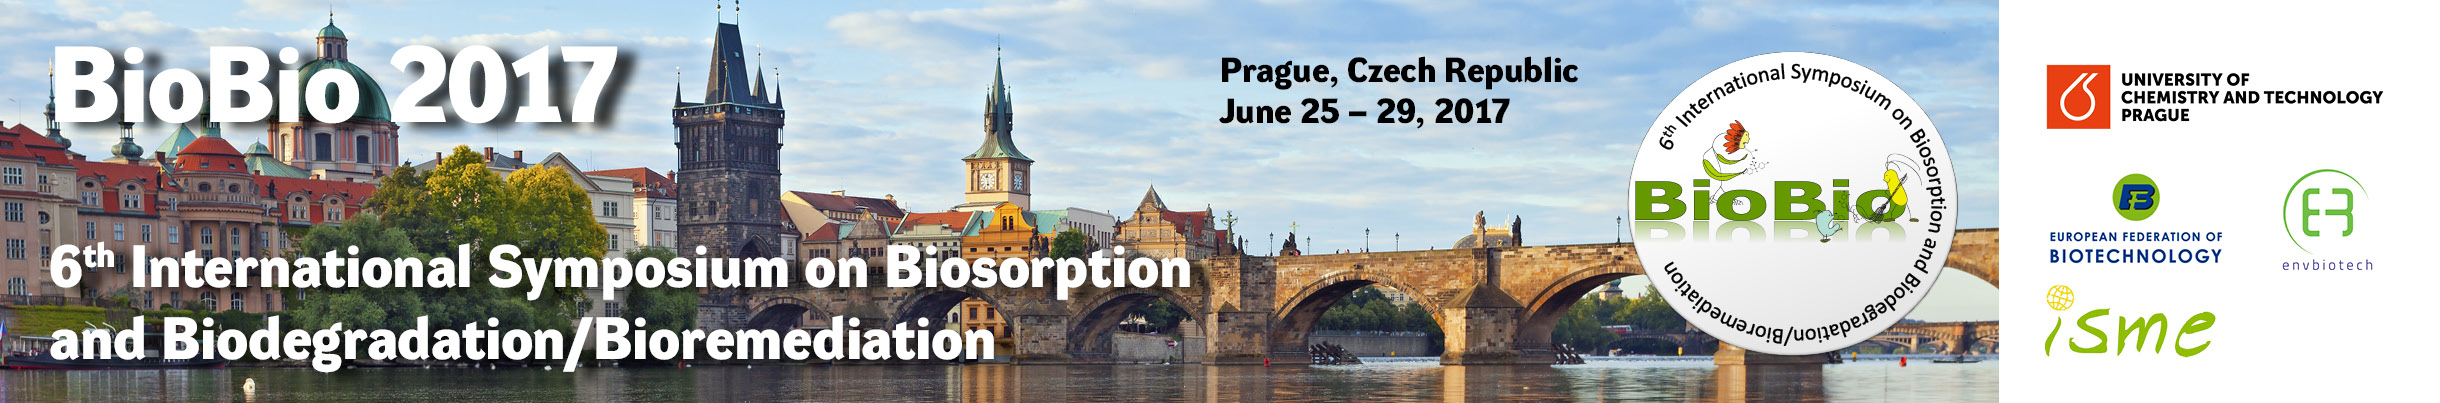 ISBB 2017, 25. 6. – 29. 6. 2017, Balling Hall of the National Library of Technology, Prague, Czech Republic